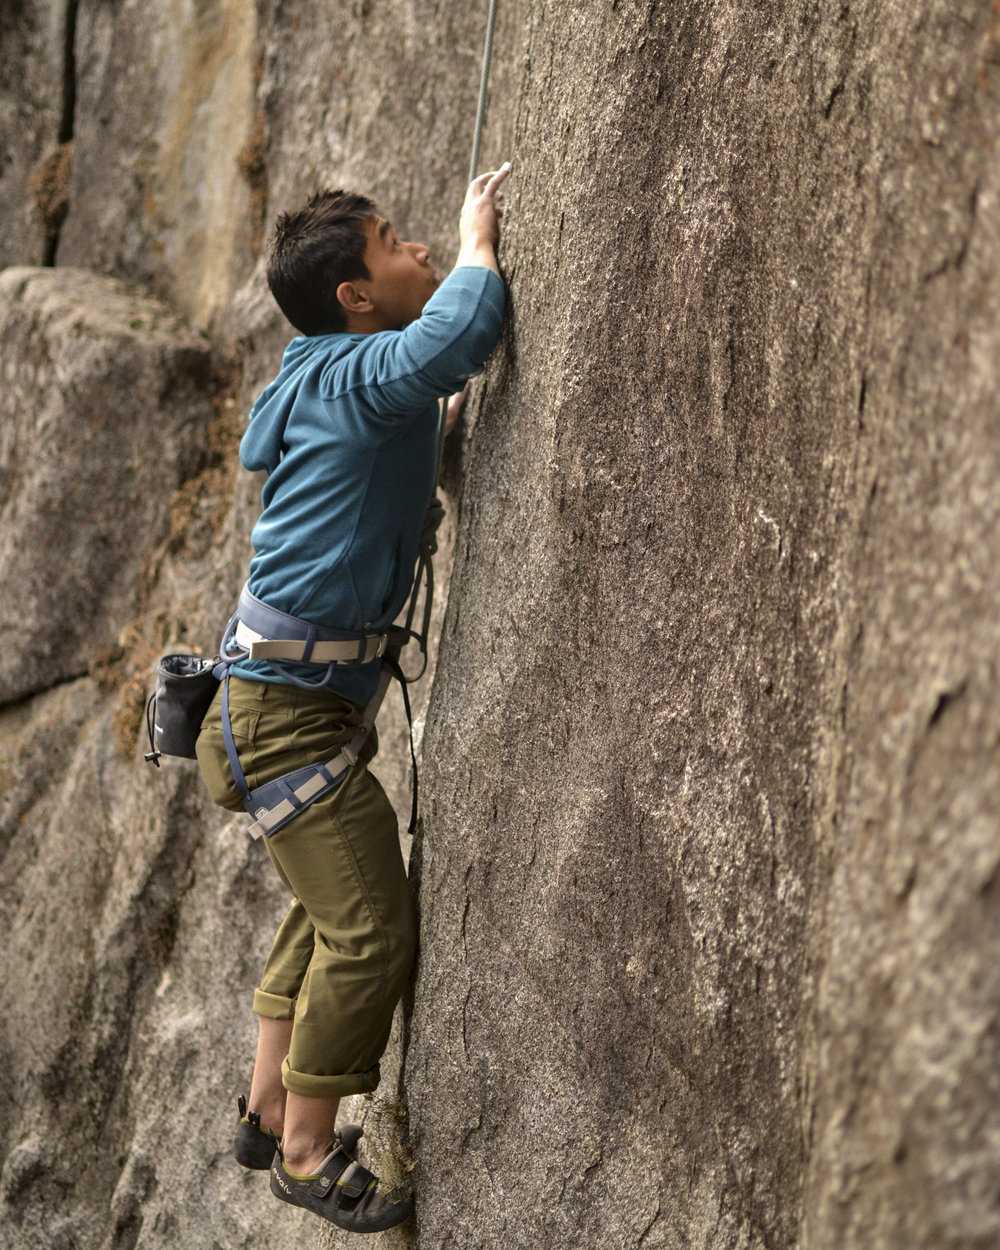 017- Alex looking for pods on an unnamed finger crack in Yosemite National Park